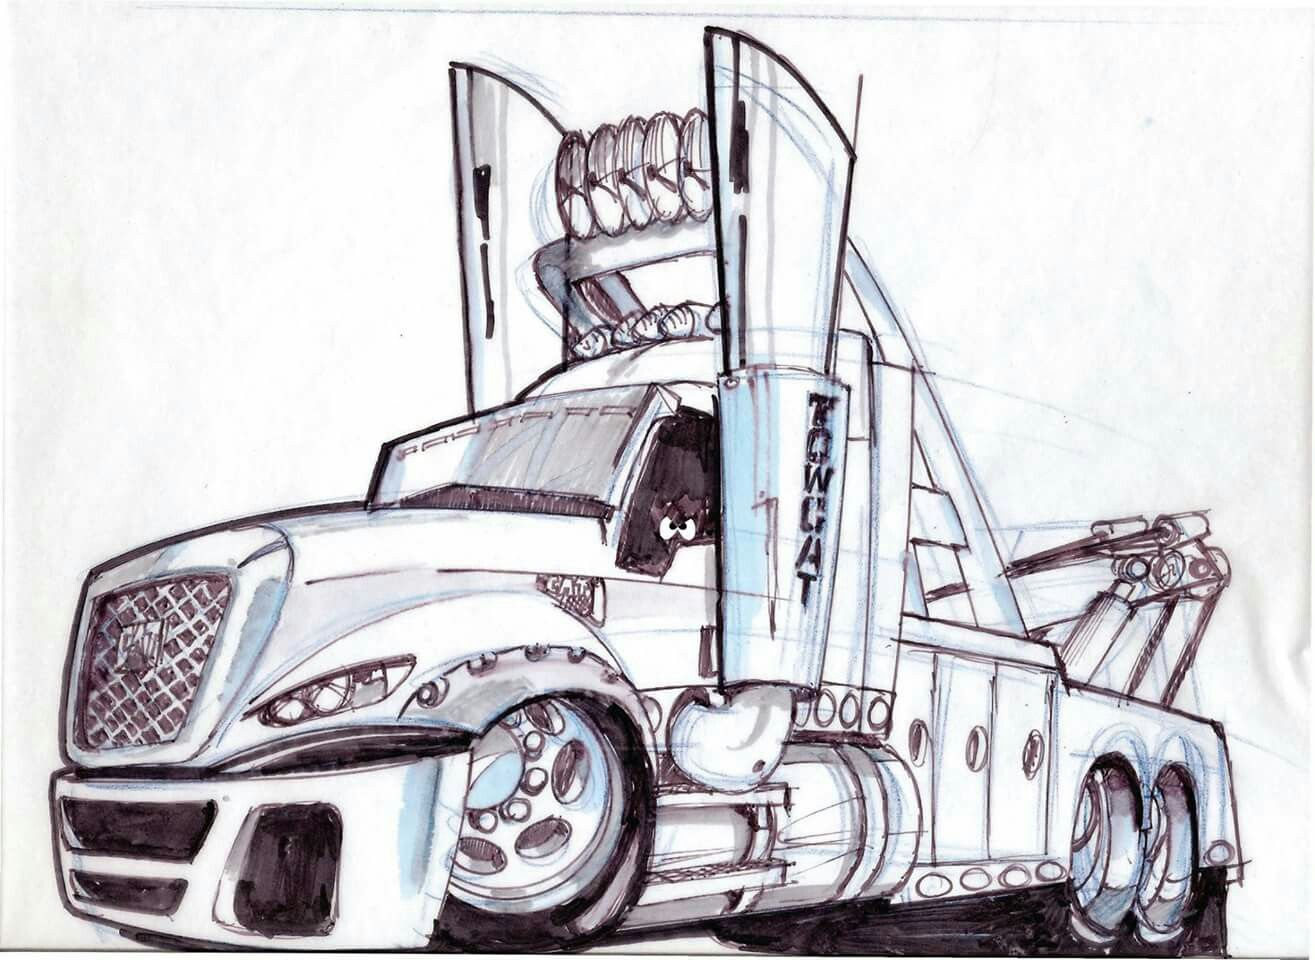 Tow Trucks By Tramp Design Tow Truck Towing